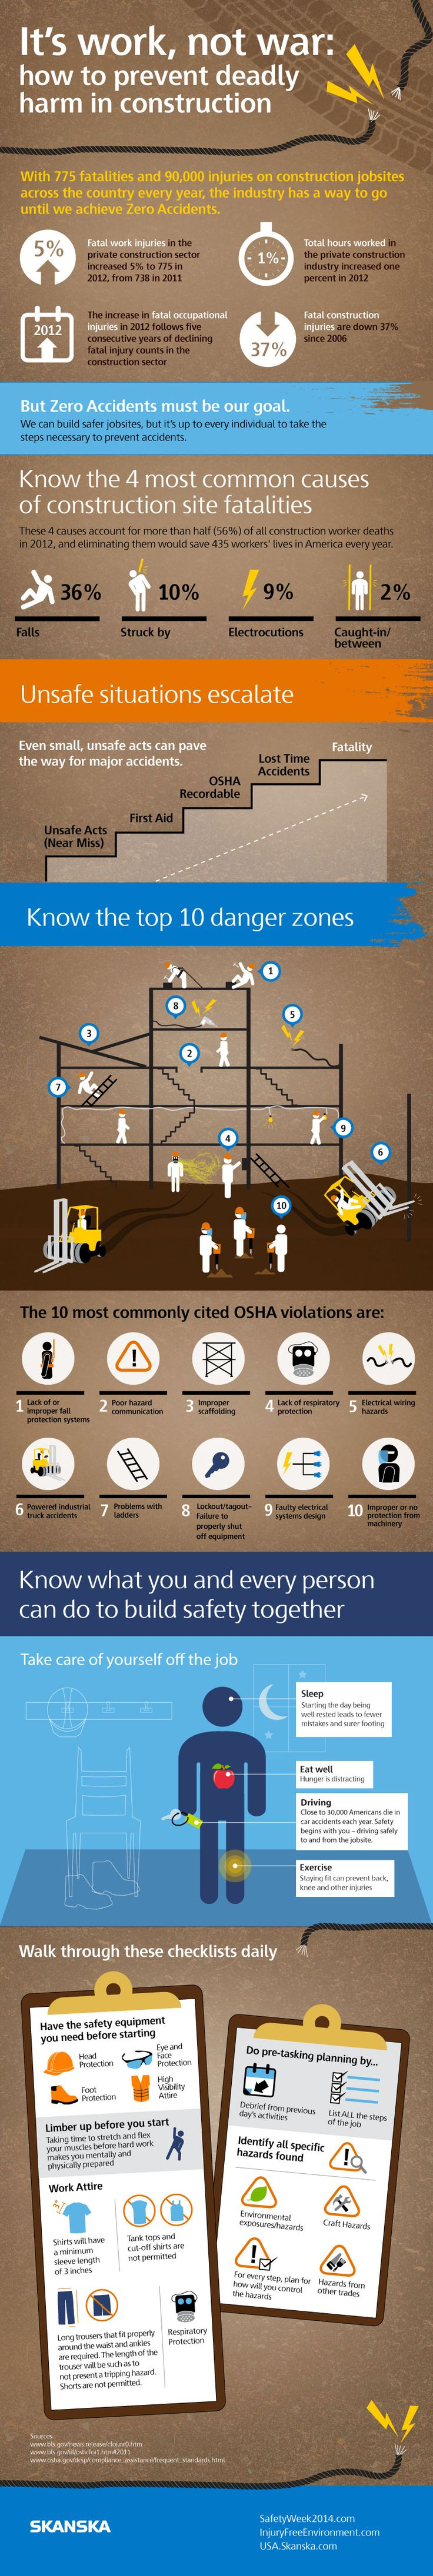 Great infographic on construction safety. A visual reminder of what is at stake and what can be done to prevent harm. #Construction #Safety #Infographic